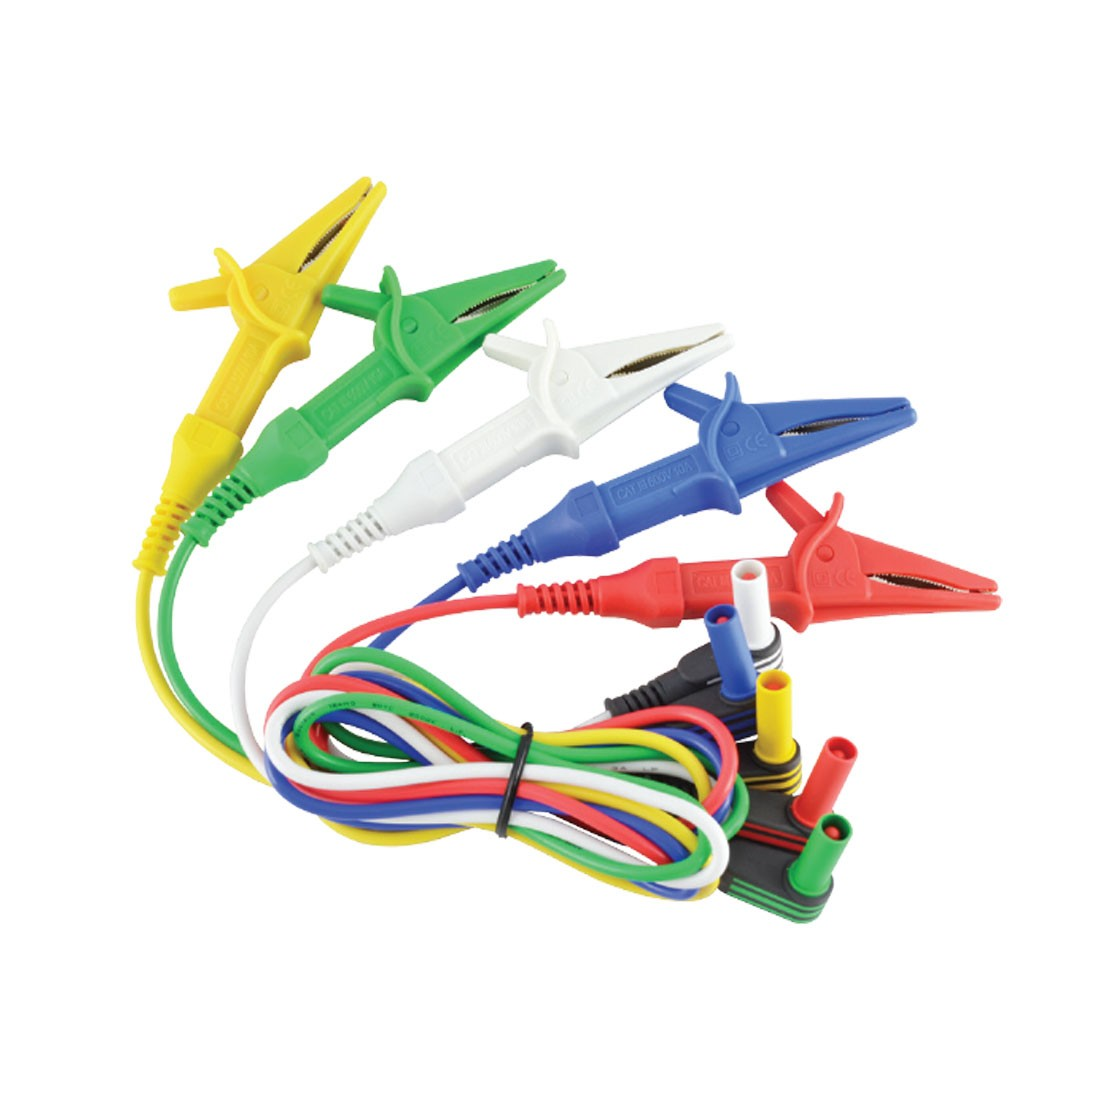 AL-34 Test Leads (Choose between five colors with Alligator Clips)